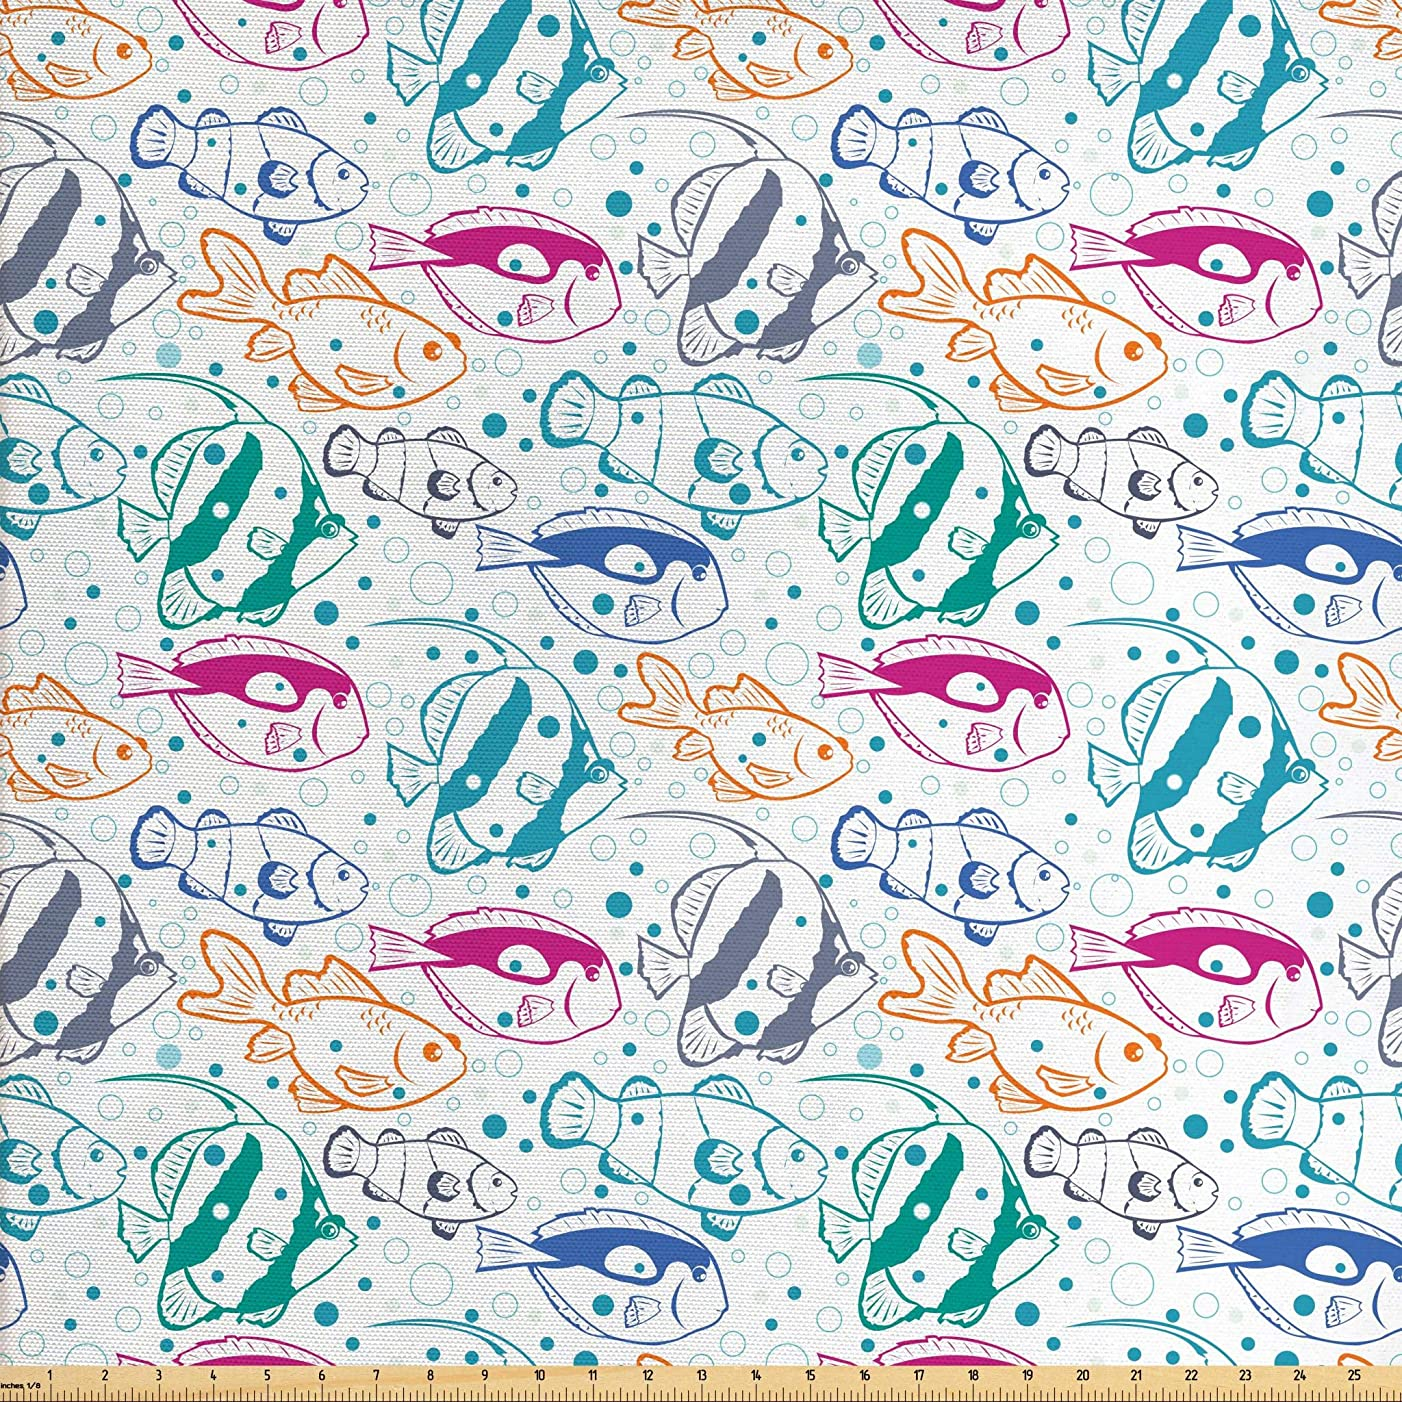 Ambesonne Fish Fabric by The Yard, Marine Design Ocean Animals Underwater Hand-Drawn in Lively Colors Retro Cartoon Style, Decorative Fabric for Upholstery and Home Accents, 1 Yard, Multicolor